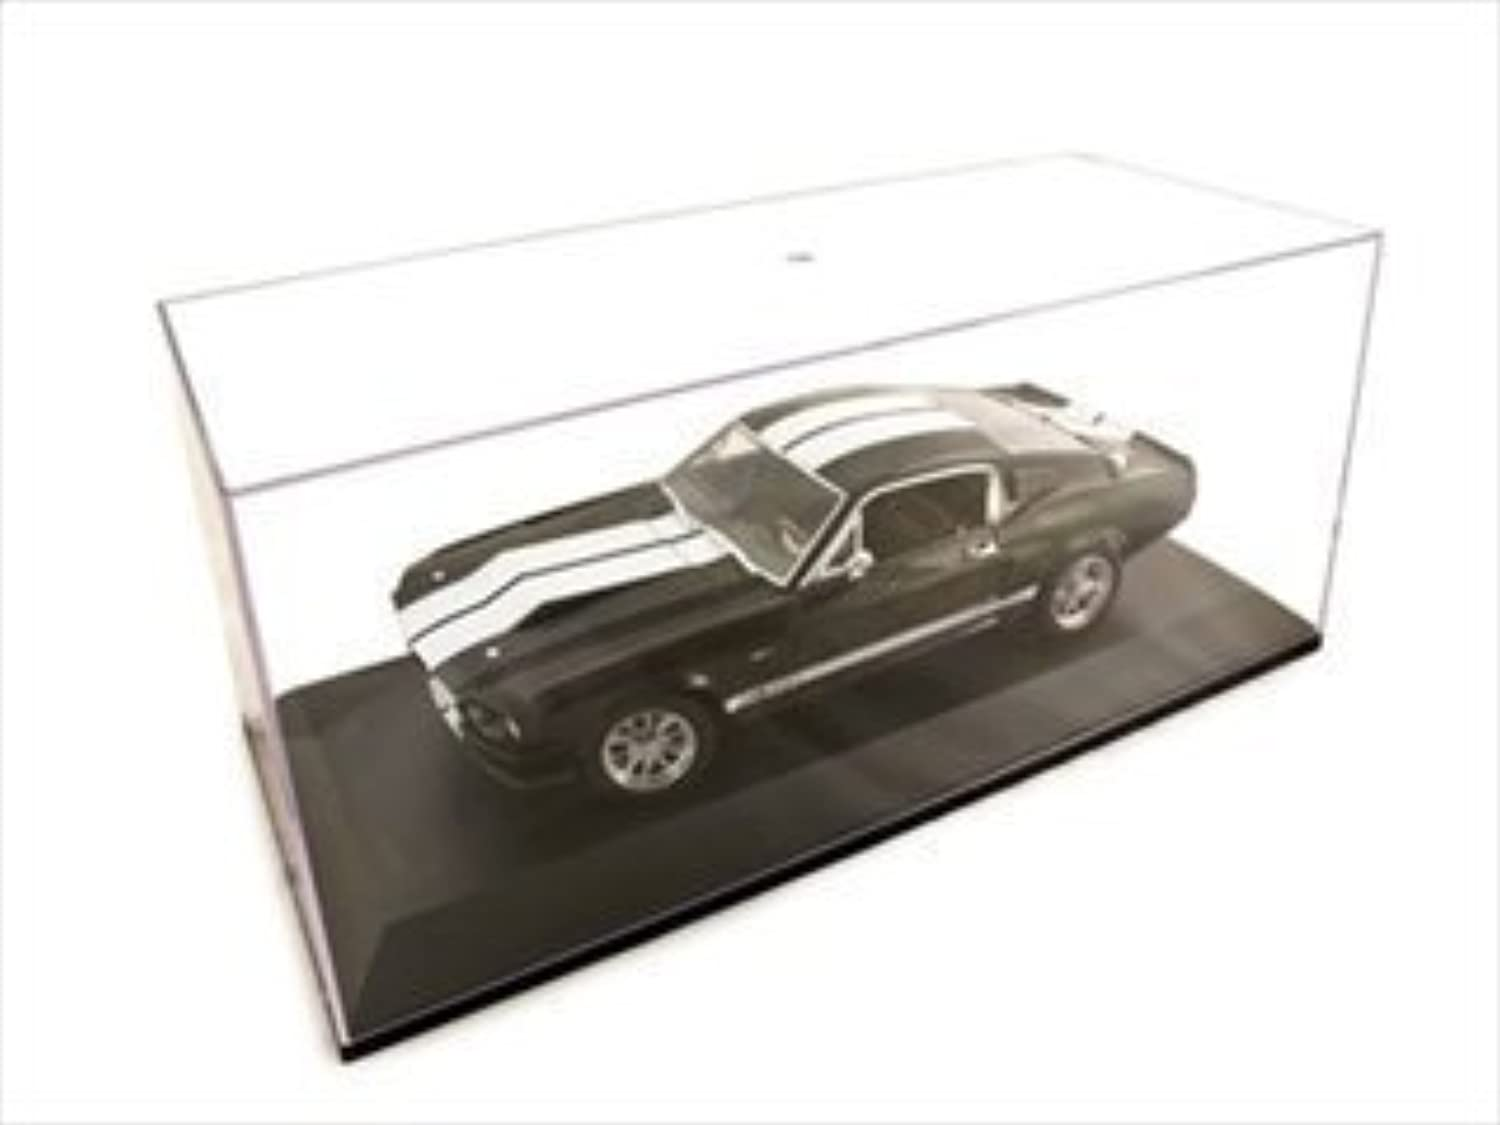 Display Show Case For 1 18 Scale Diecast Cars by Autoart 90003 90001 by AUTOart